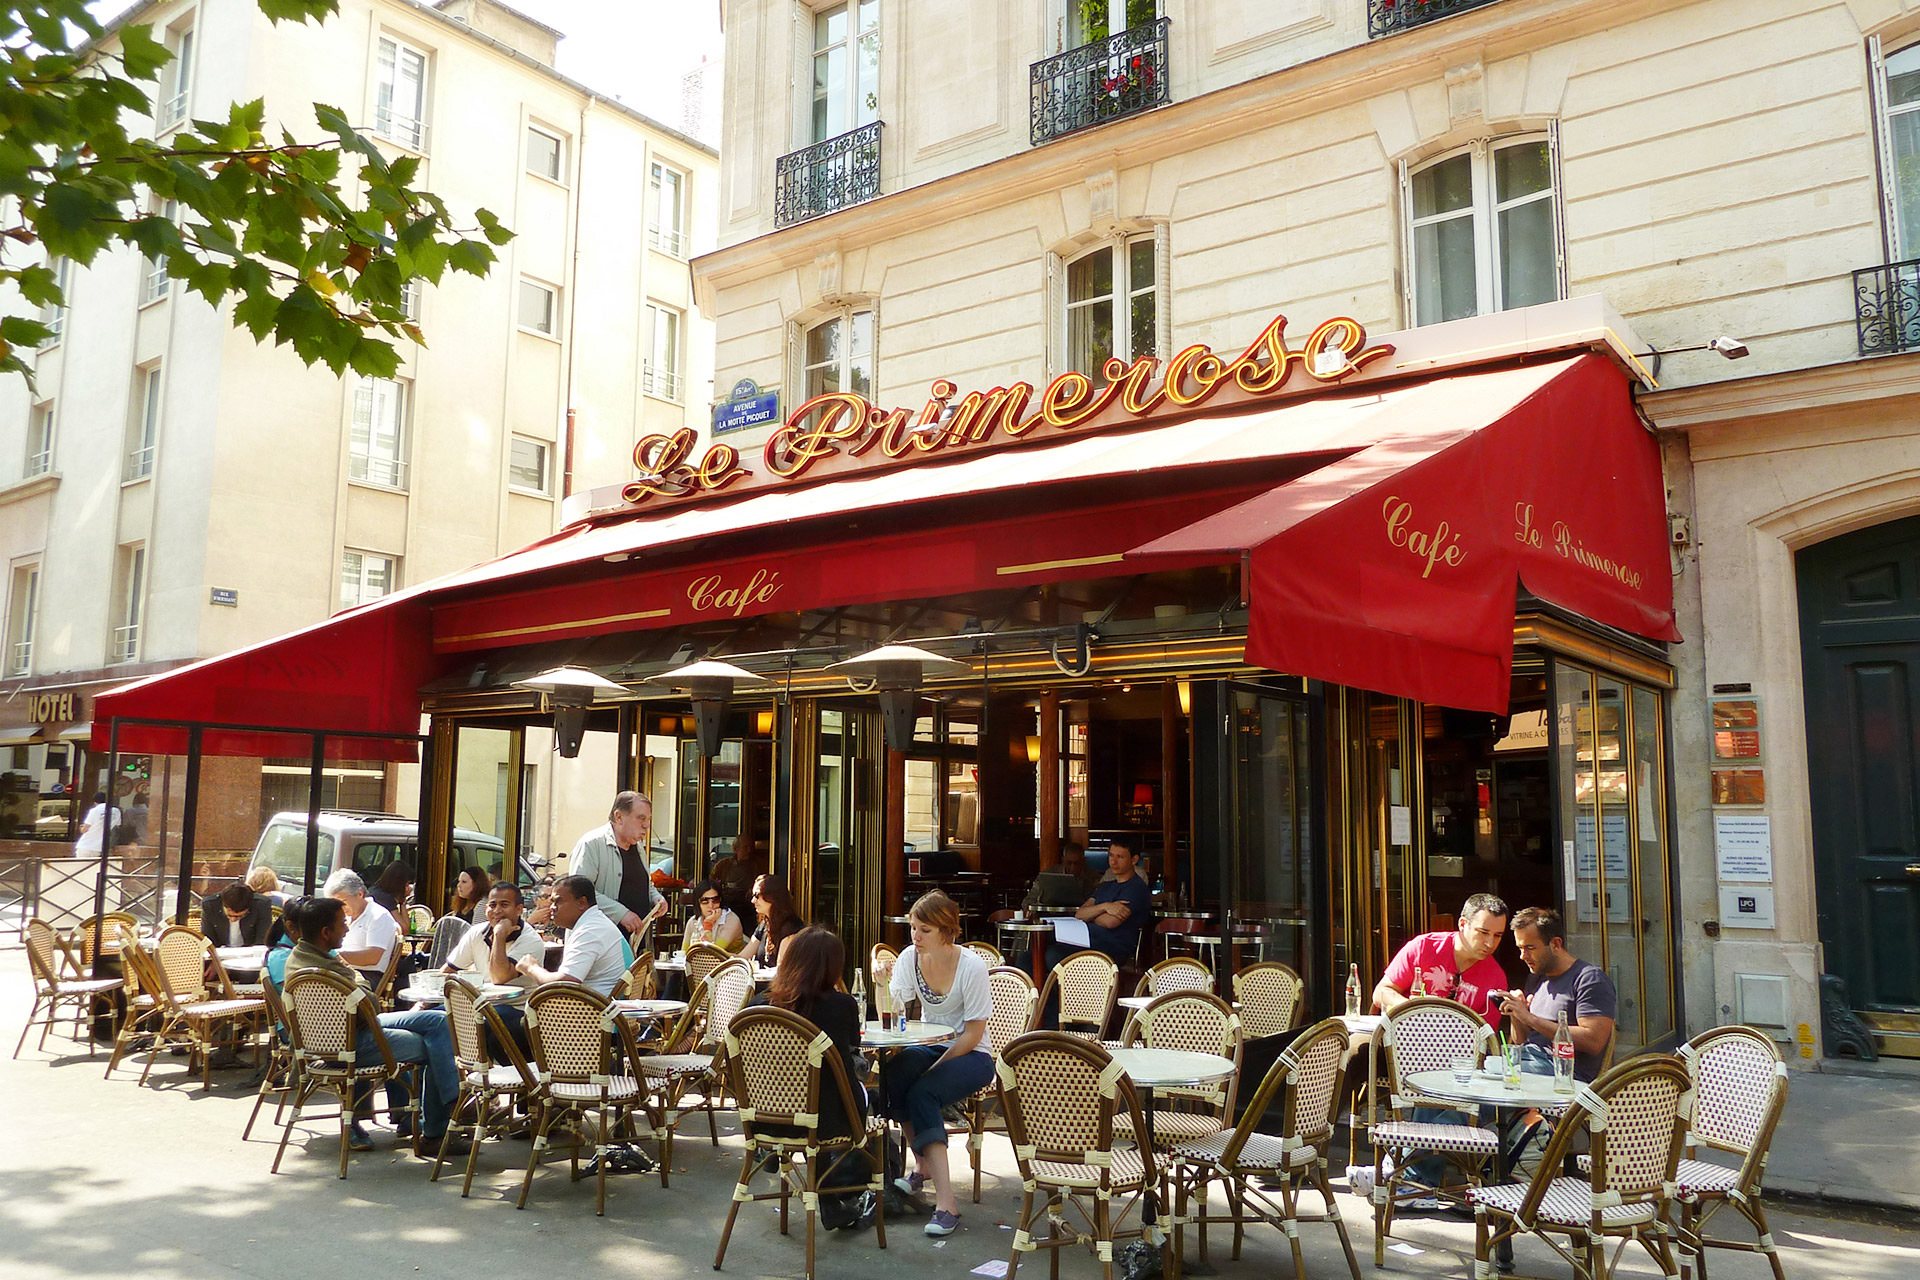 Restaurants and cafes in Paris neighborhood